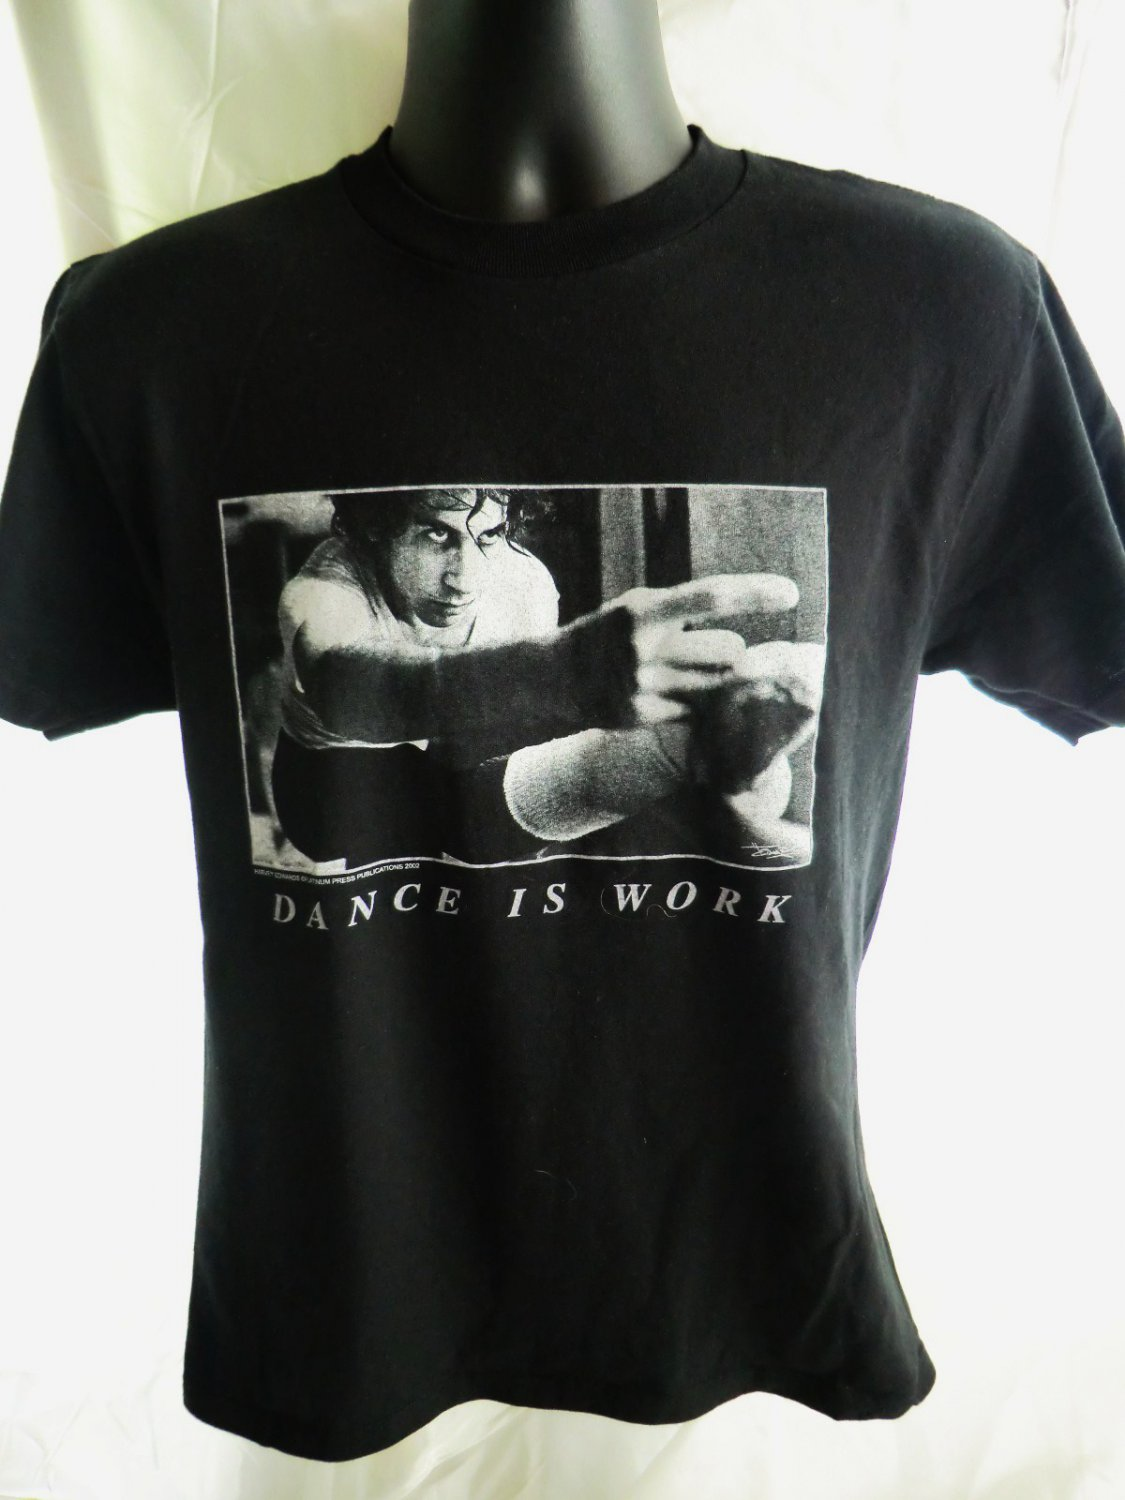 SOLD! DANCE IS WORK T-Shirt Size Medium